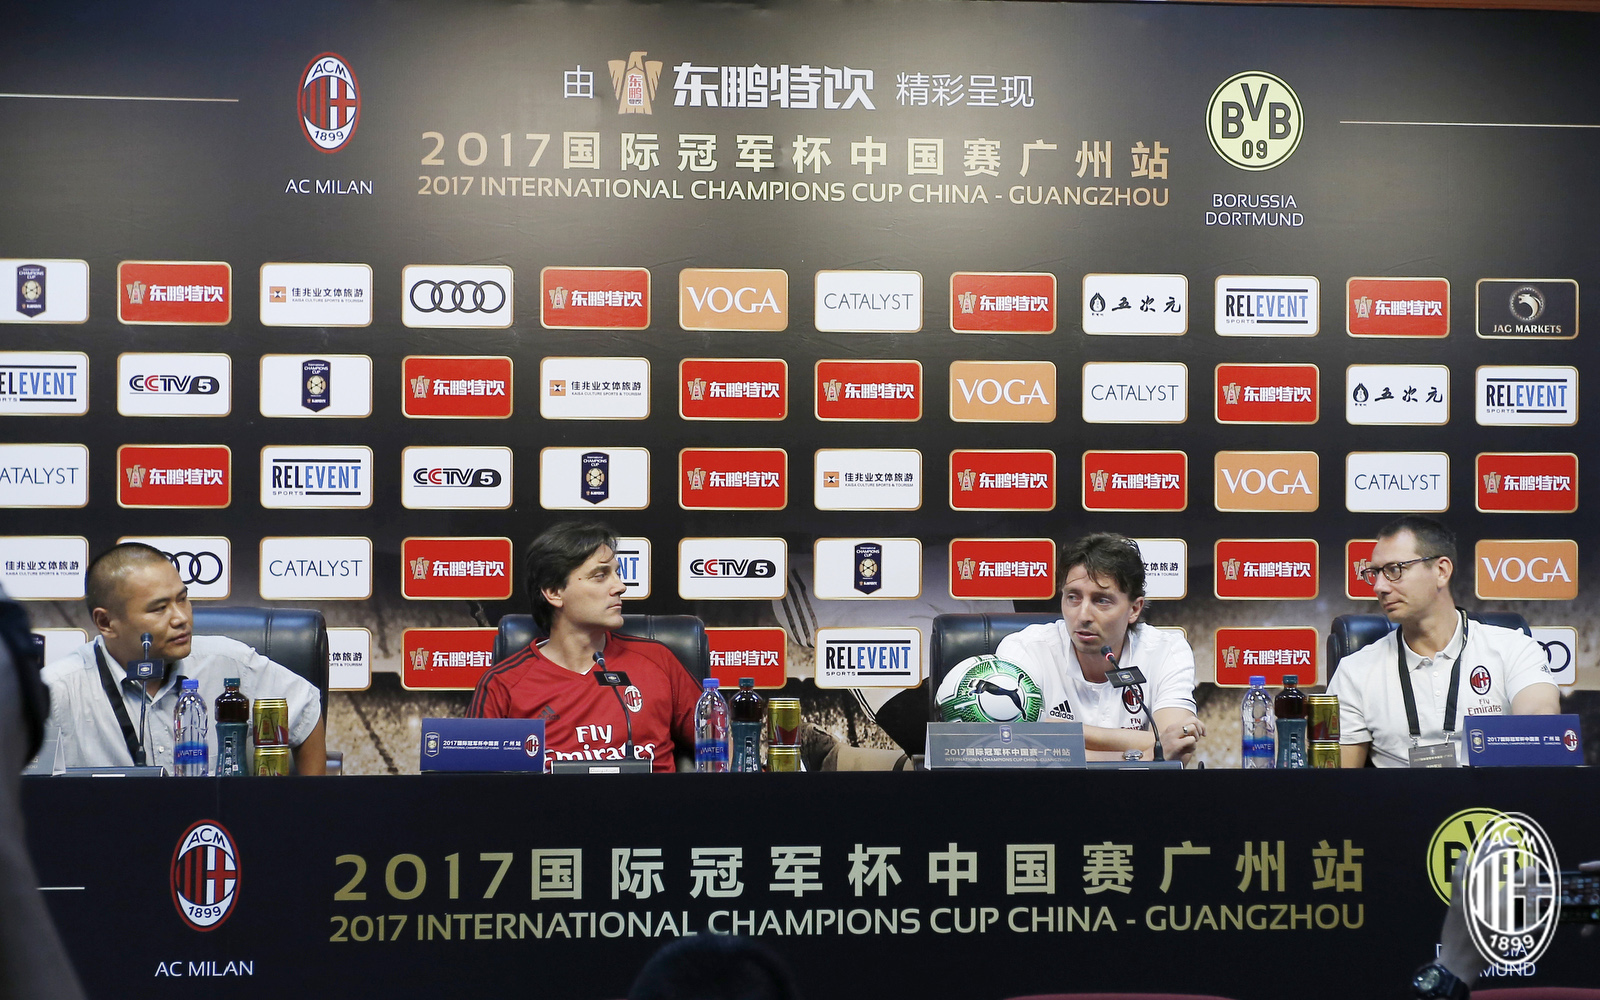 Foto LaPresse - Spada 15 Luglio 2017 - Guangzhou (Cina) A.C. Milan - Tournee Cina 2017 - Conferenza Stampa Montolivo e Montella Sport Calcio Nella foto: Montolivo Montella Photo LaPresse - Spada July 15, 2017 Guangzhou (China) Sport Soccer A.C. Milan -China Tournee 2017 - Press Conference Head Coach Montella and Montolivo In the pic: Montolivo Montella